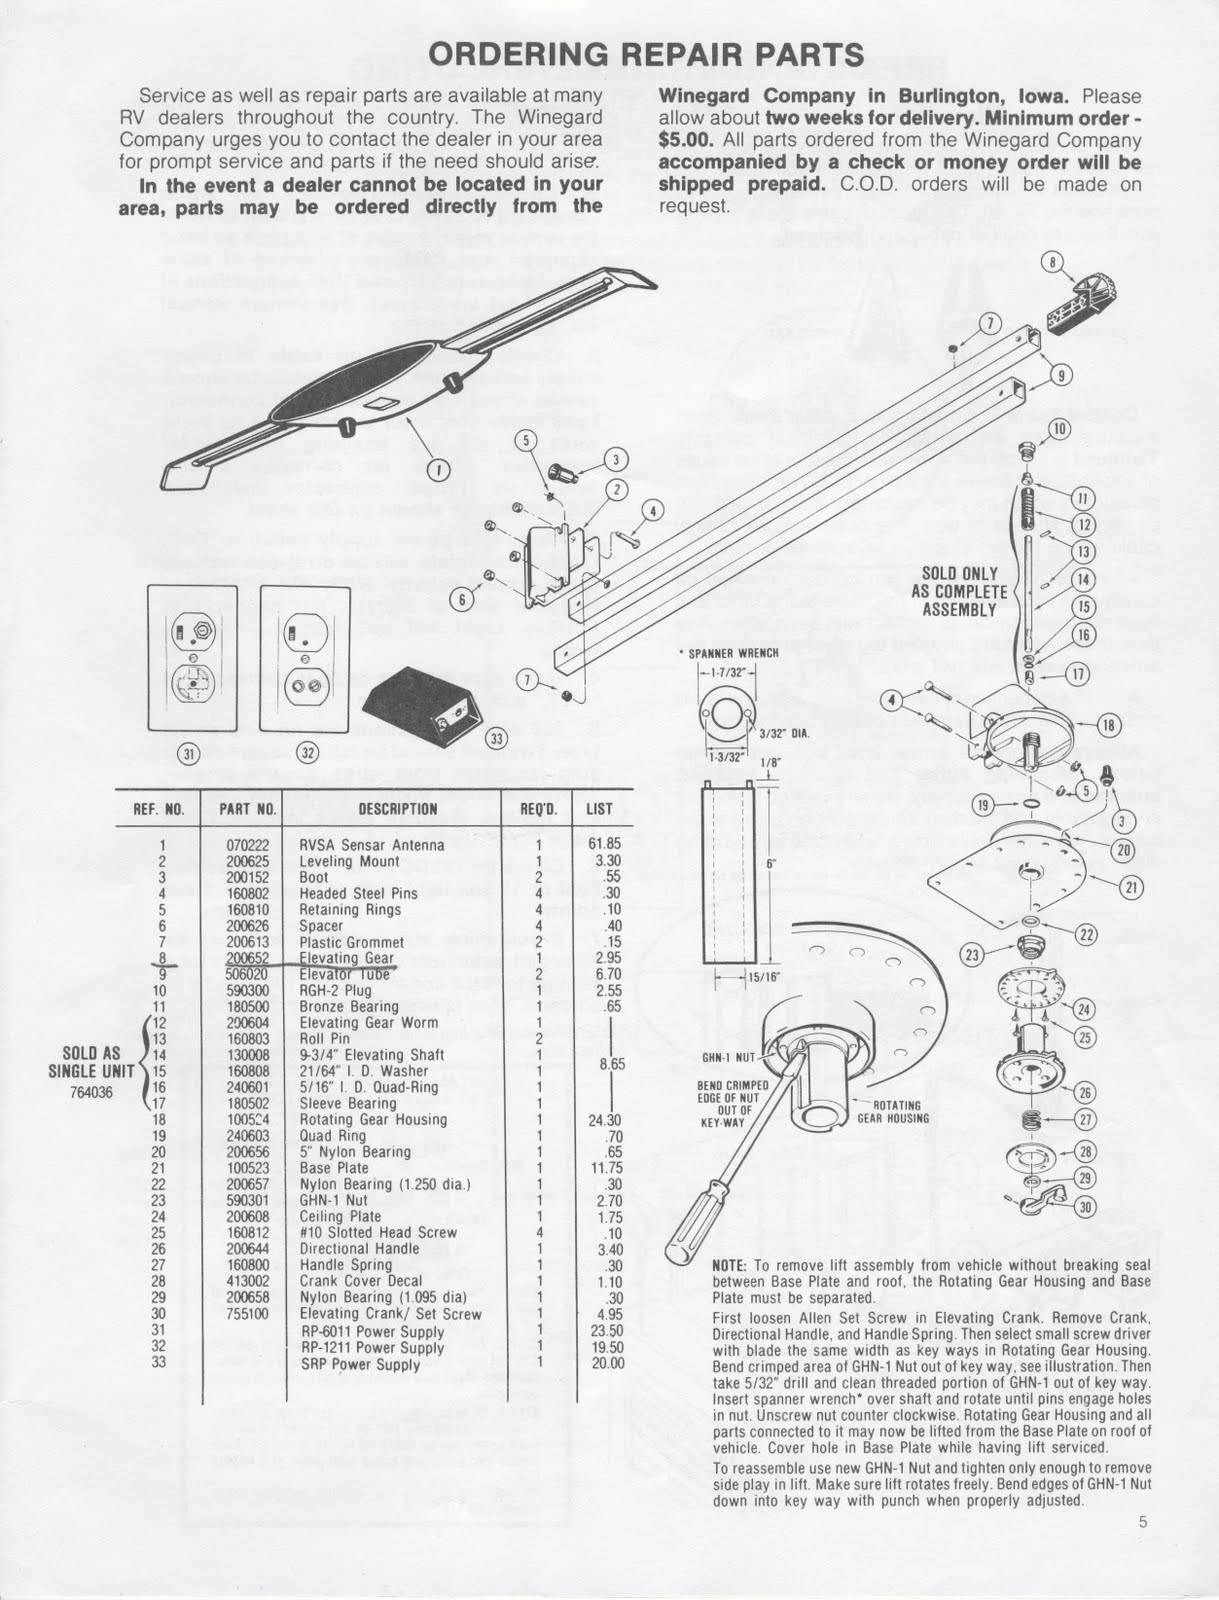 Pace Arrow Electrical Diagram. Parts. Wiring Diagram Images